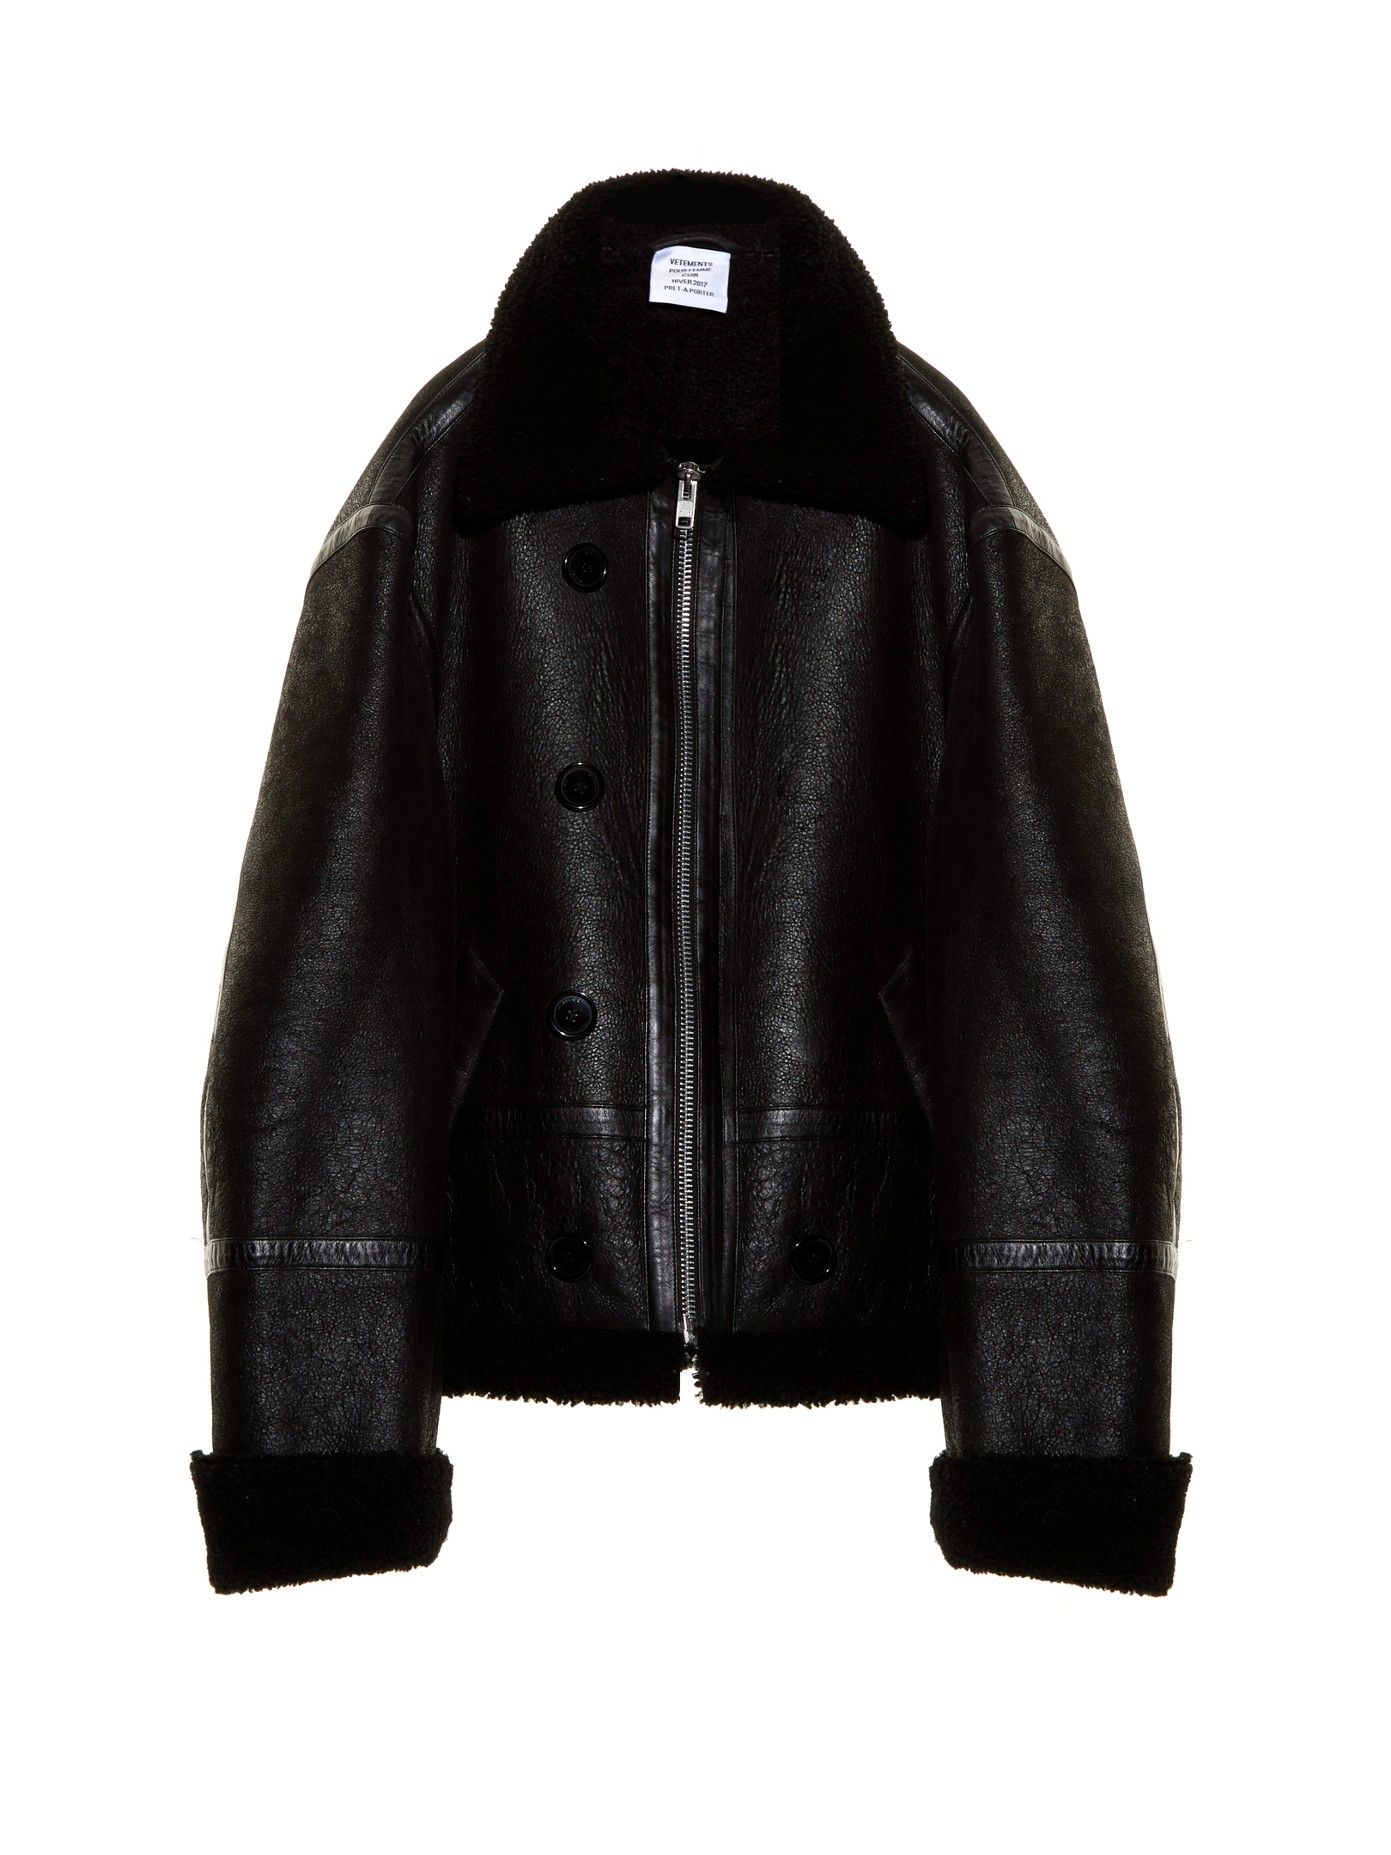 0764e513 Adopt Vetements's exaggerated silhouettes with this oversized black shearling  jacket. It has a grained-leather exterior that gives way to a fuzzy lining  and ...